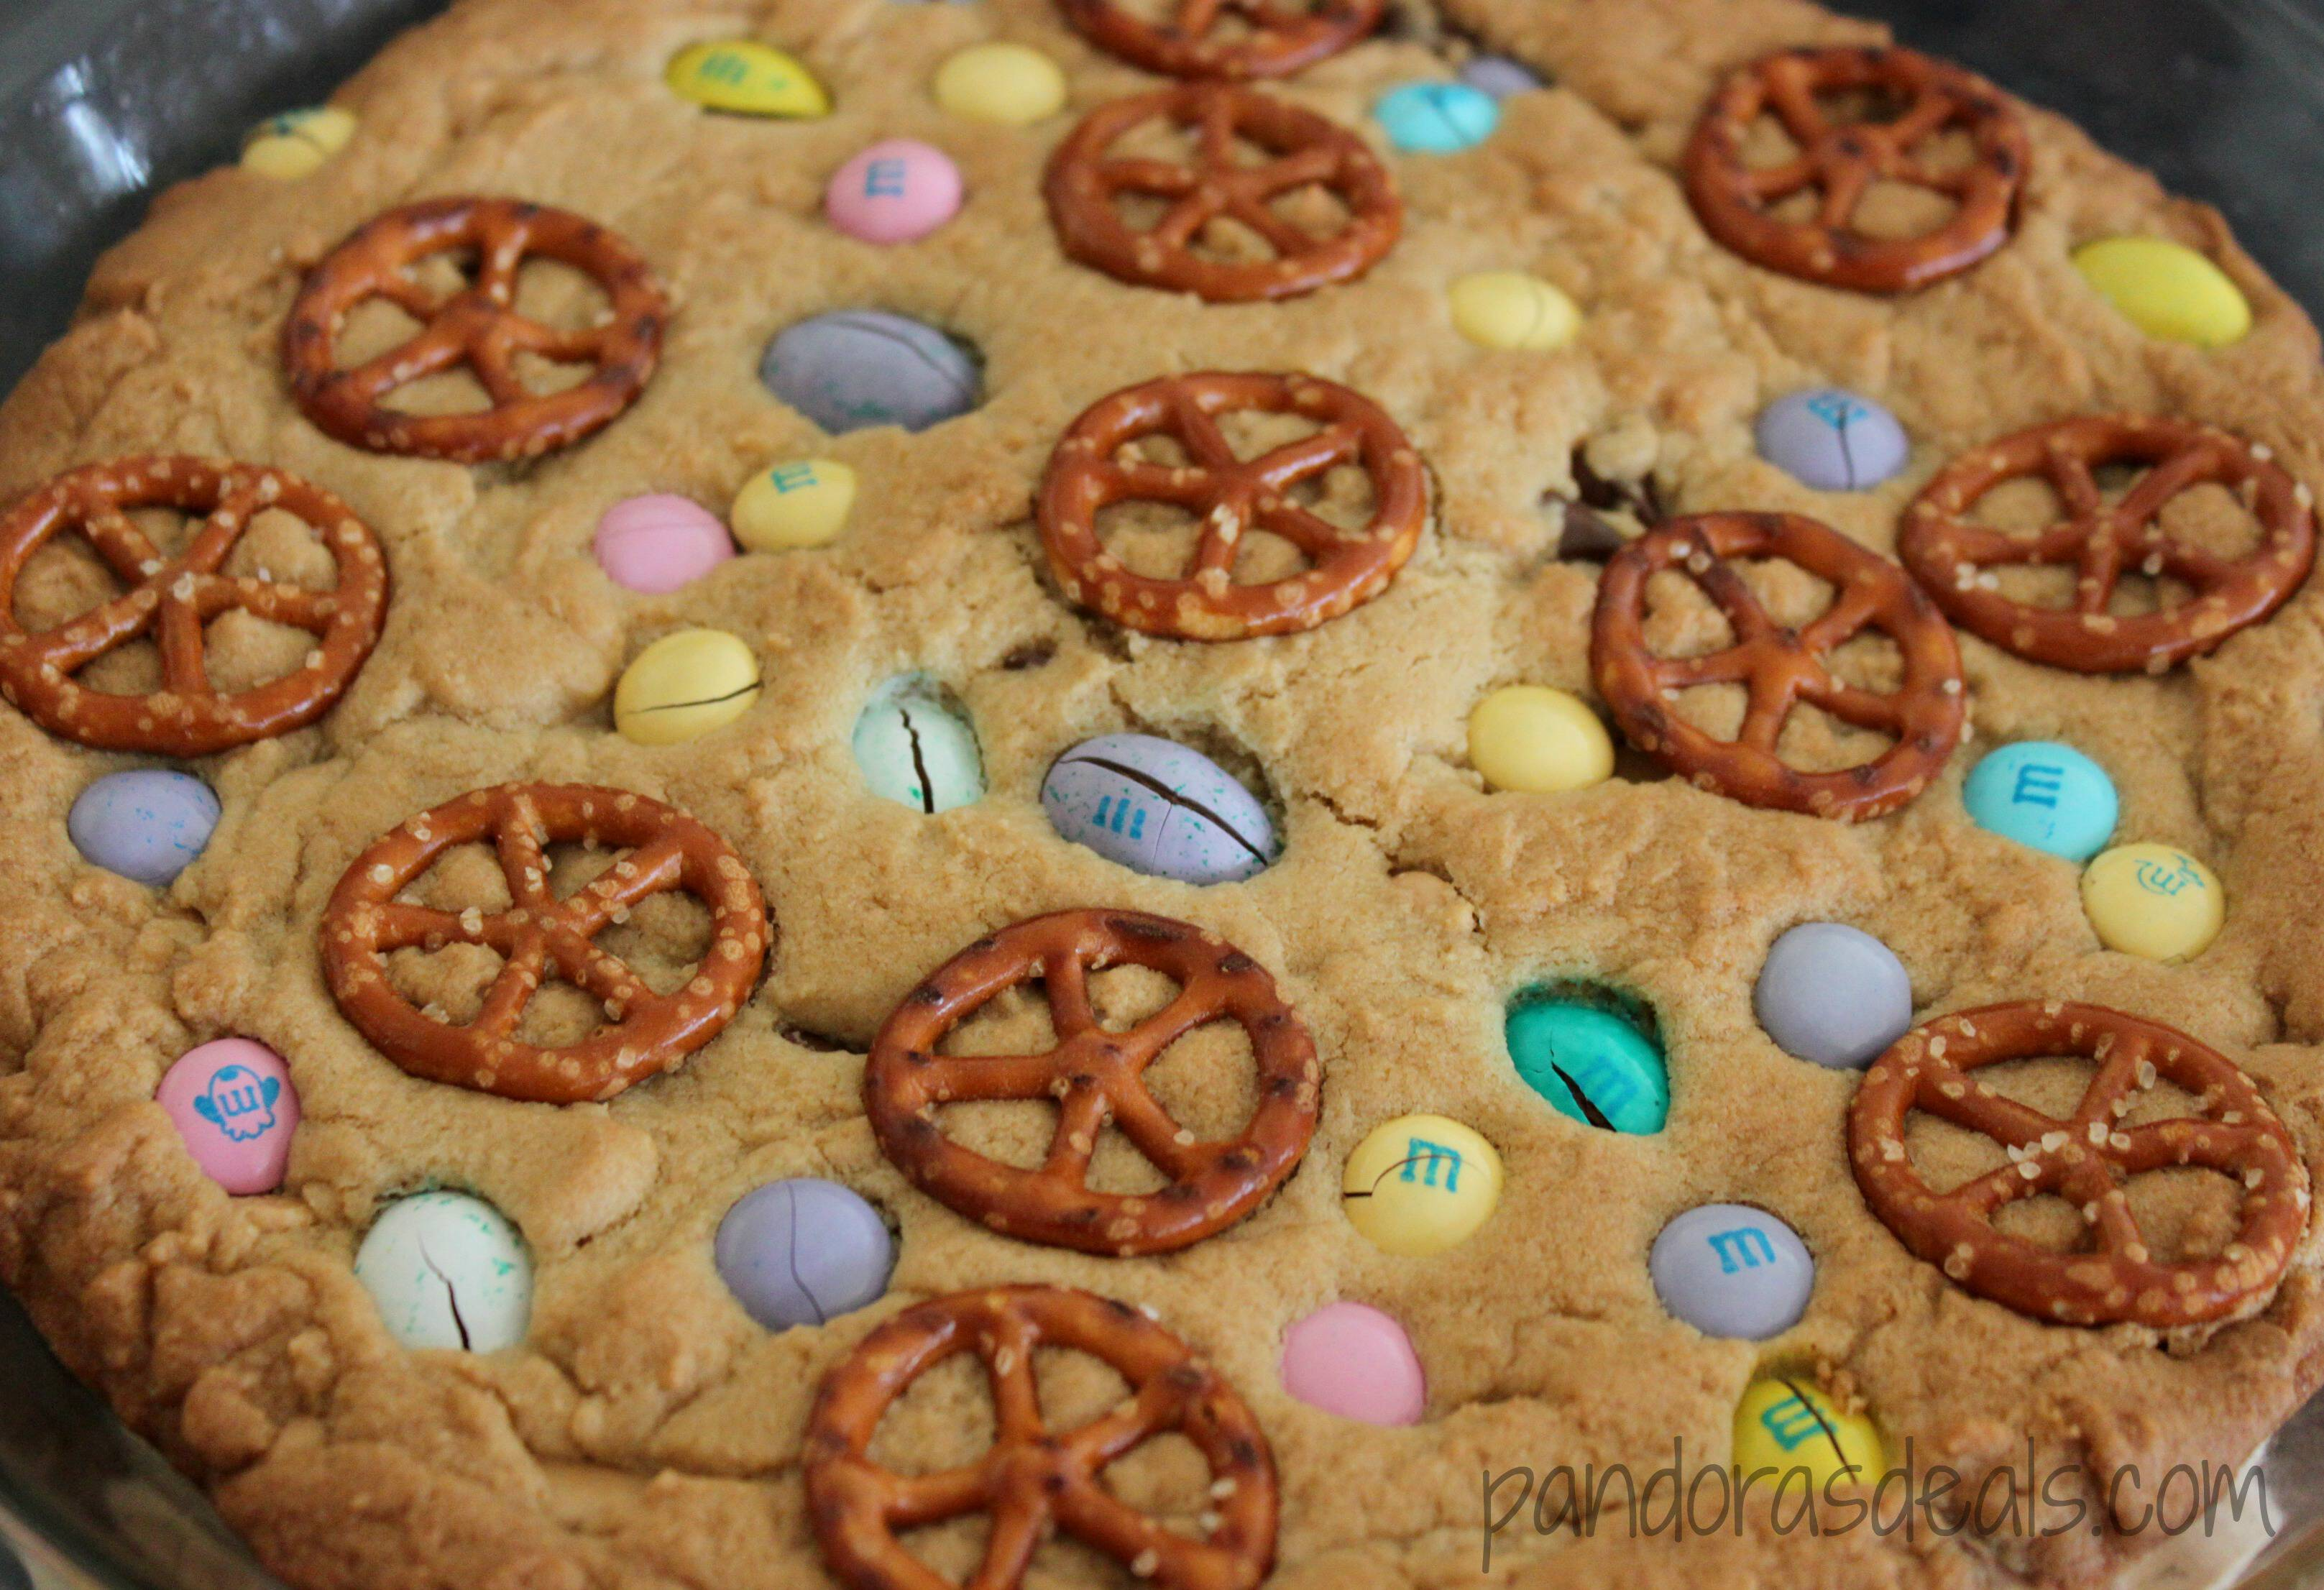 Looking for simple yet FUN Easter ideas? My kids absolutely love this dessert recipe! I love it too because it's so easy. Here's the directions to make this tasty and pretty Easter Cookie Pie.